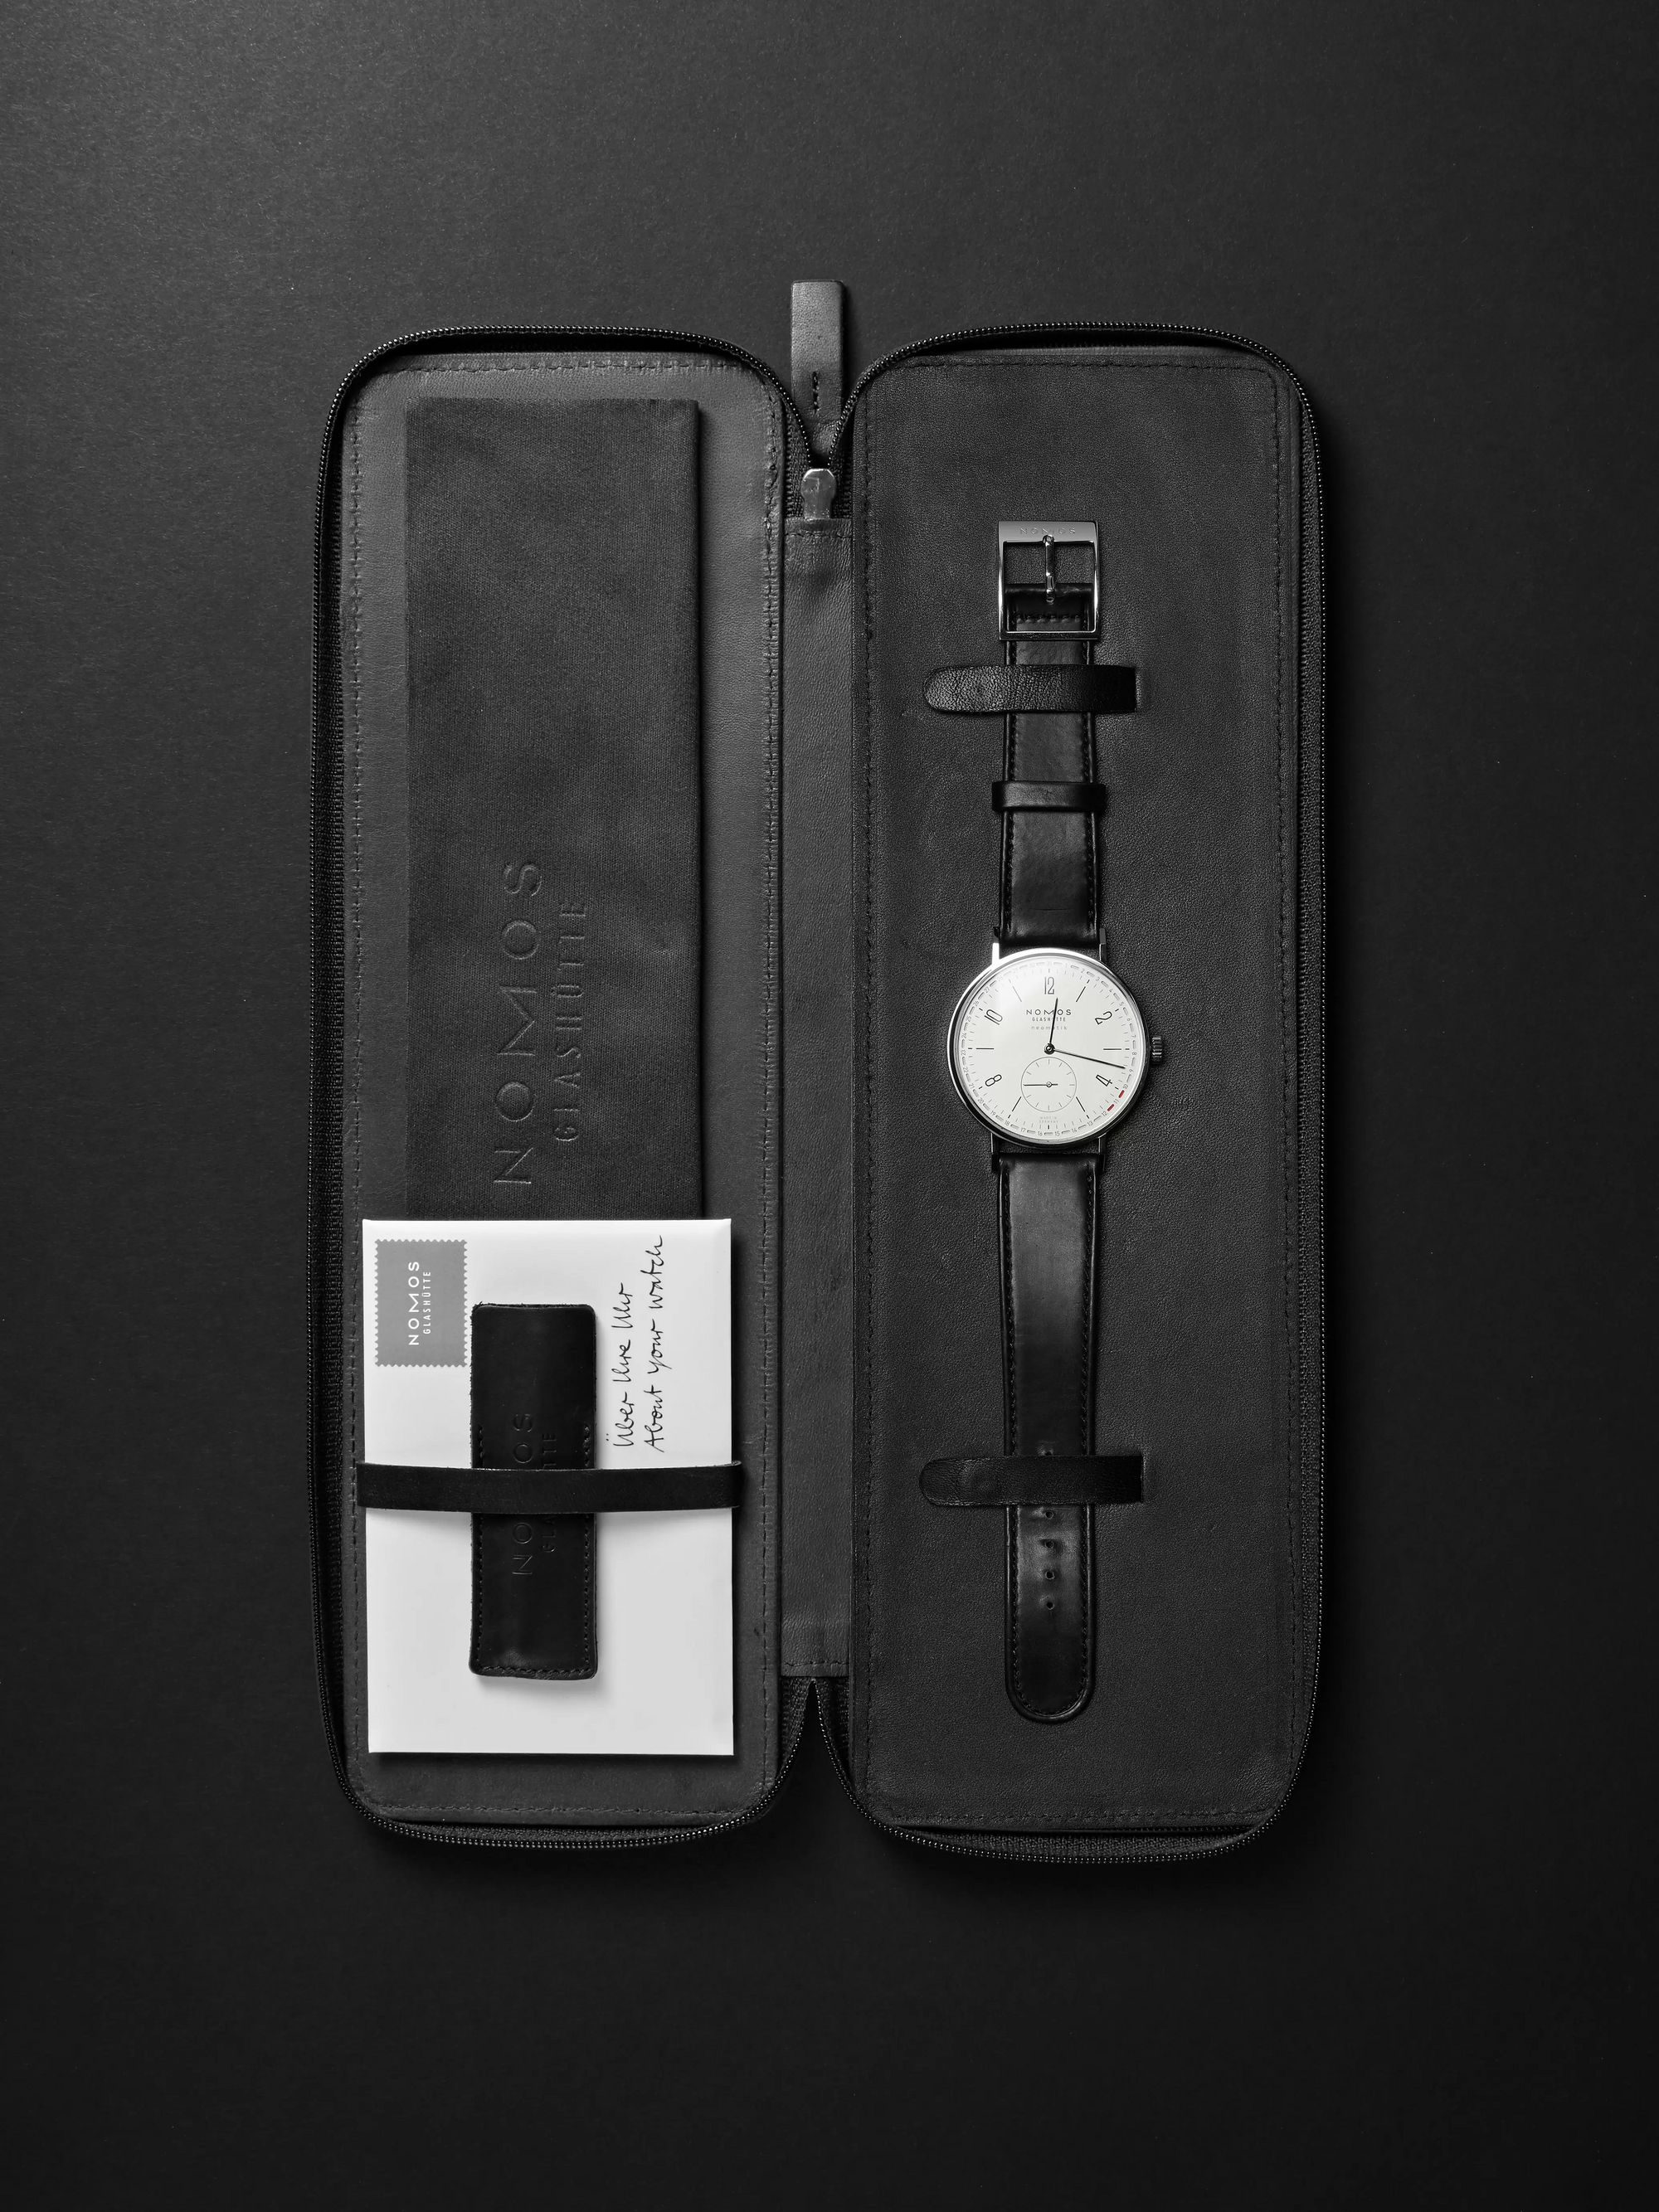 NOMOS Glashütte Tangente Neomatik Automatic 41mm Stainless Steel and Leather Watch, Ref. No. 180